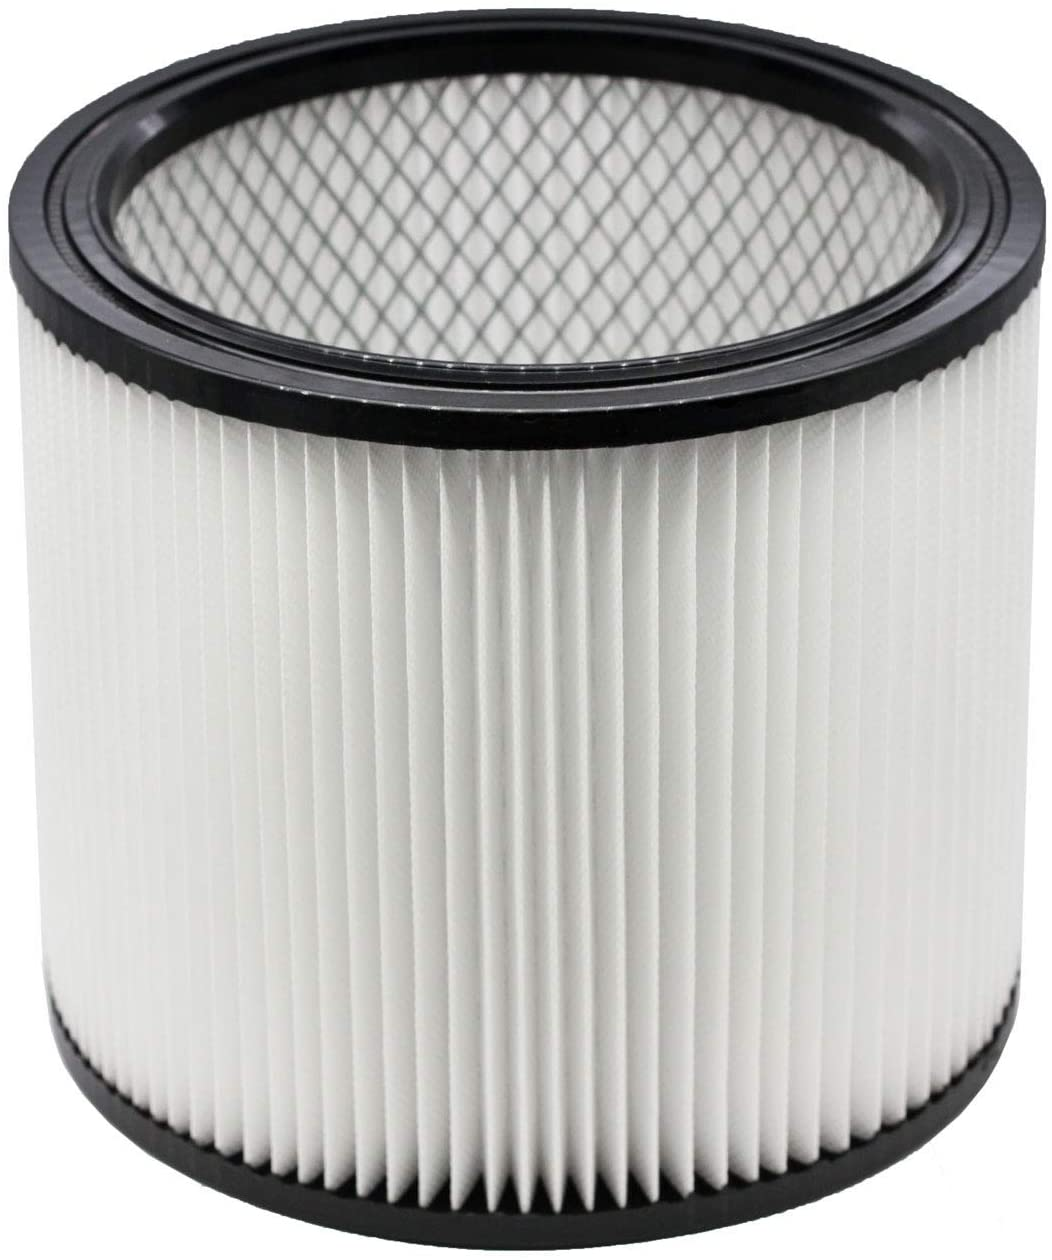 Extolife Replacement Filter for for Shop-Vac 90350 90304 90333 Replacement fits most Wet/Dry Vacuum Cleaners 5 Gallon and above: Appliances